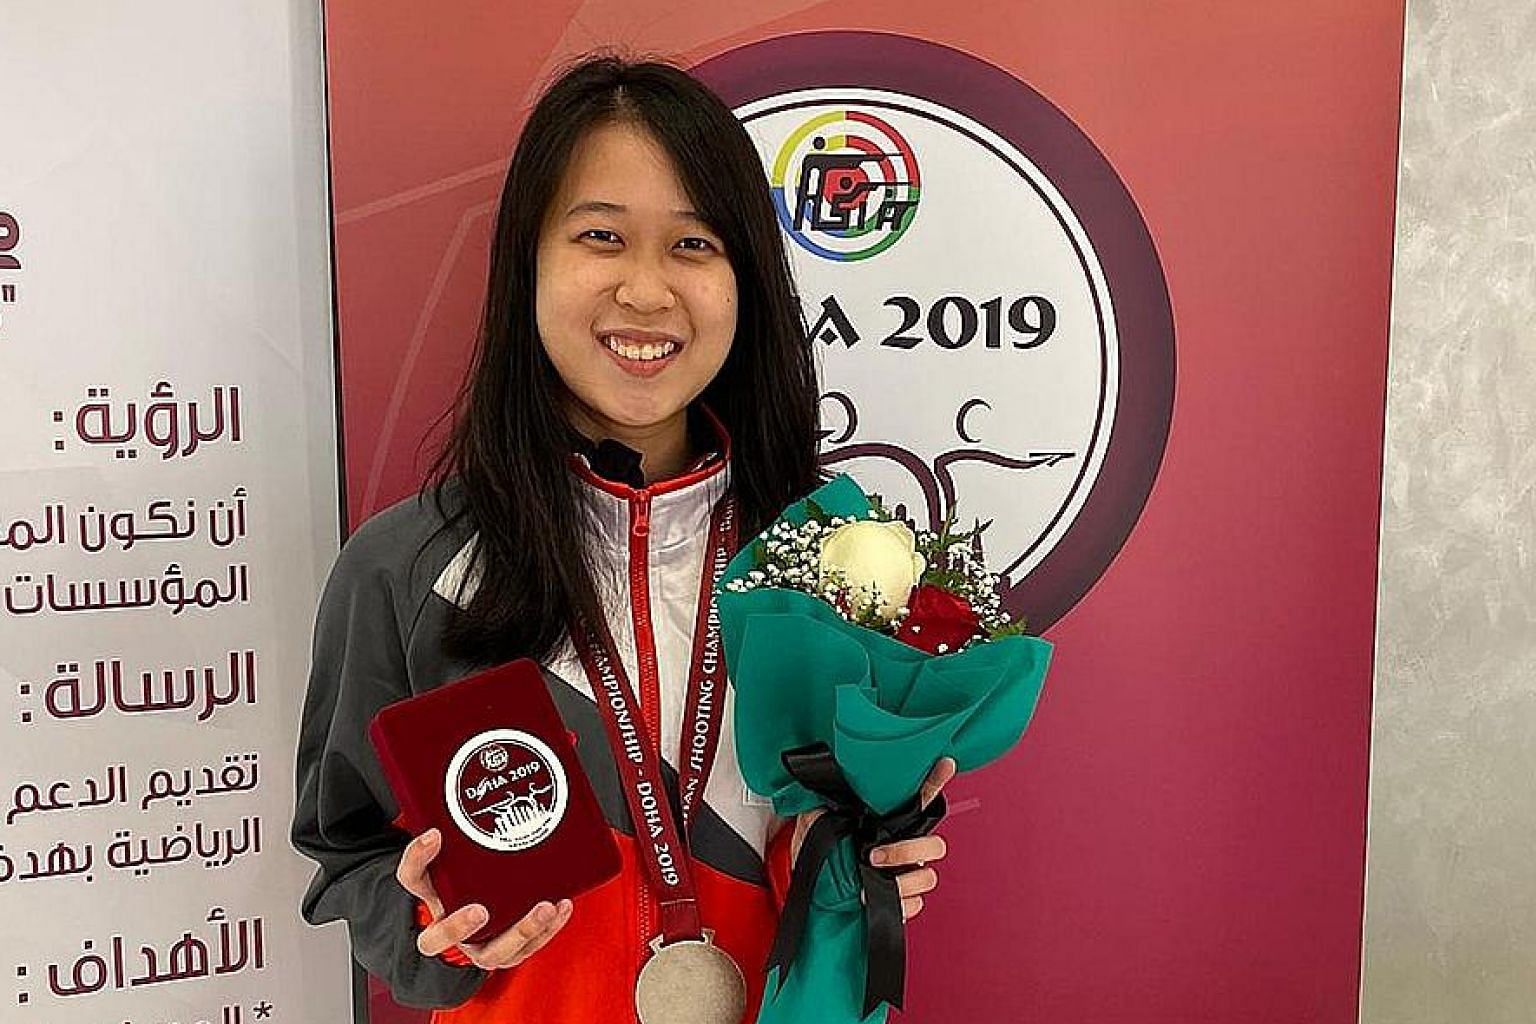 Tessa Neo finished second in the women's 10m air rifle yesterday at the Asian Shooting Championship.